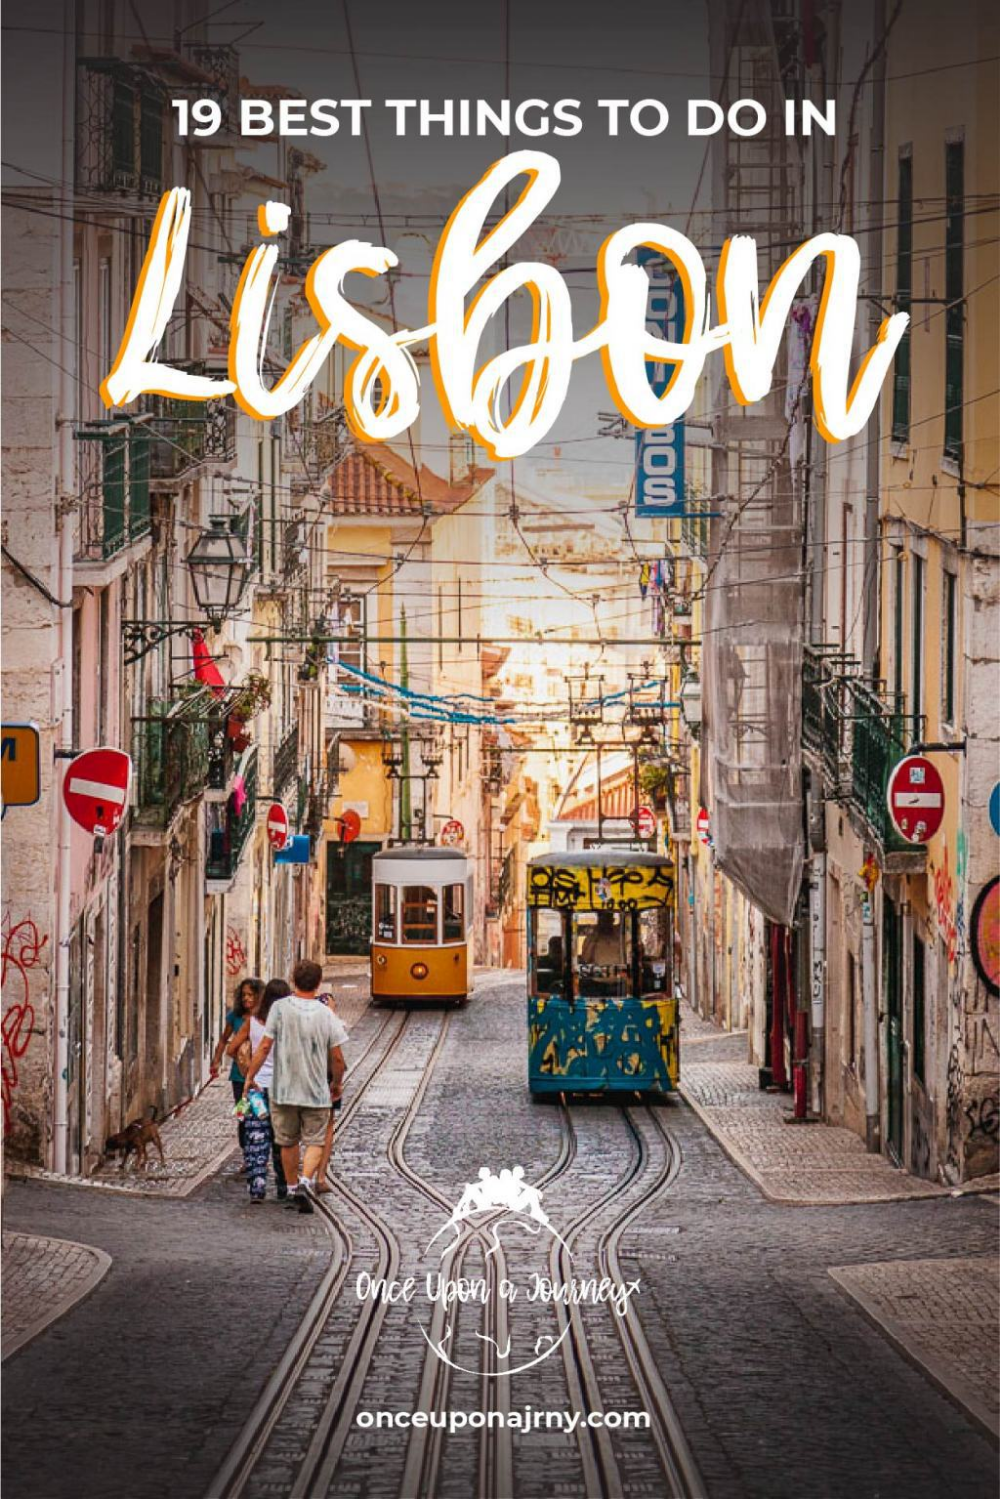 2 Days in Lisbon Itinerary: 19 Exciting Things to Do! | Once Upon A Journey